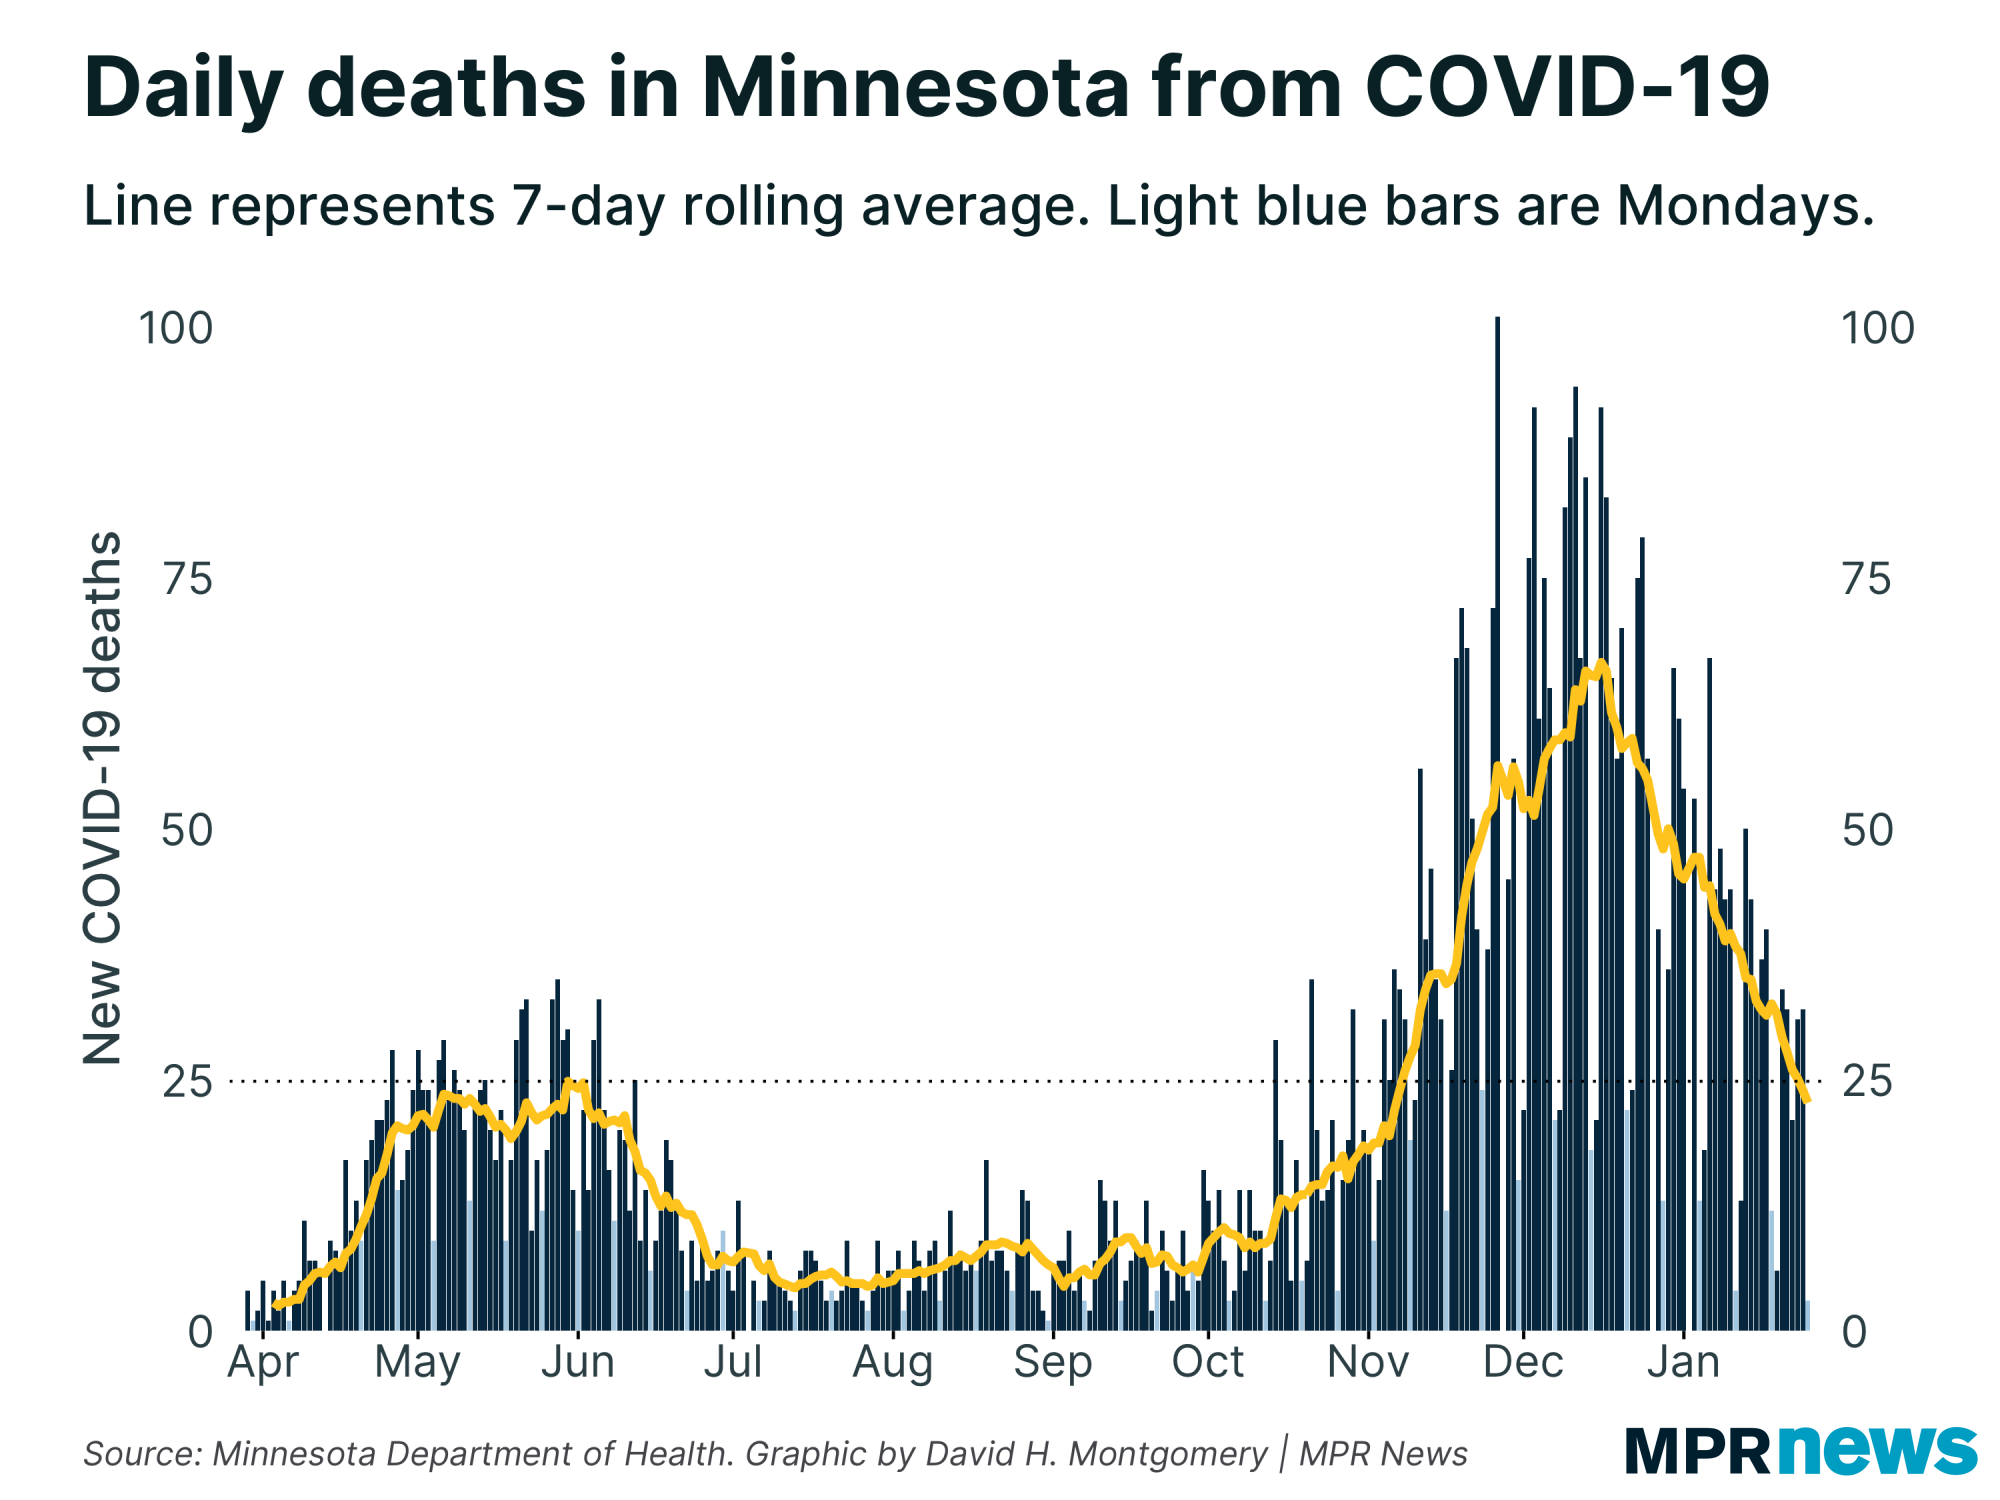 Daily deaths in Minnesota from COVID-19